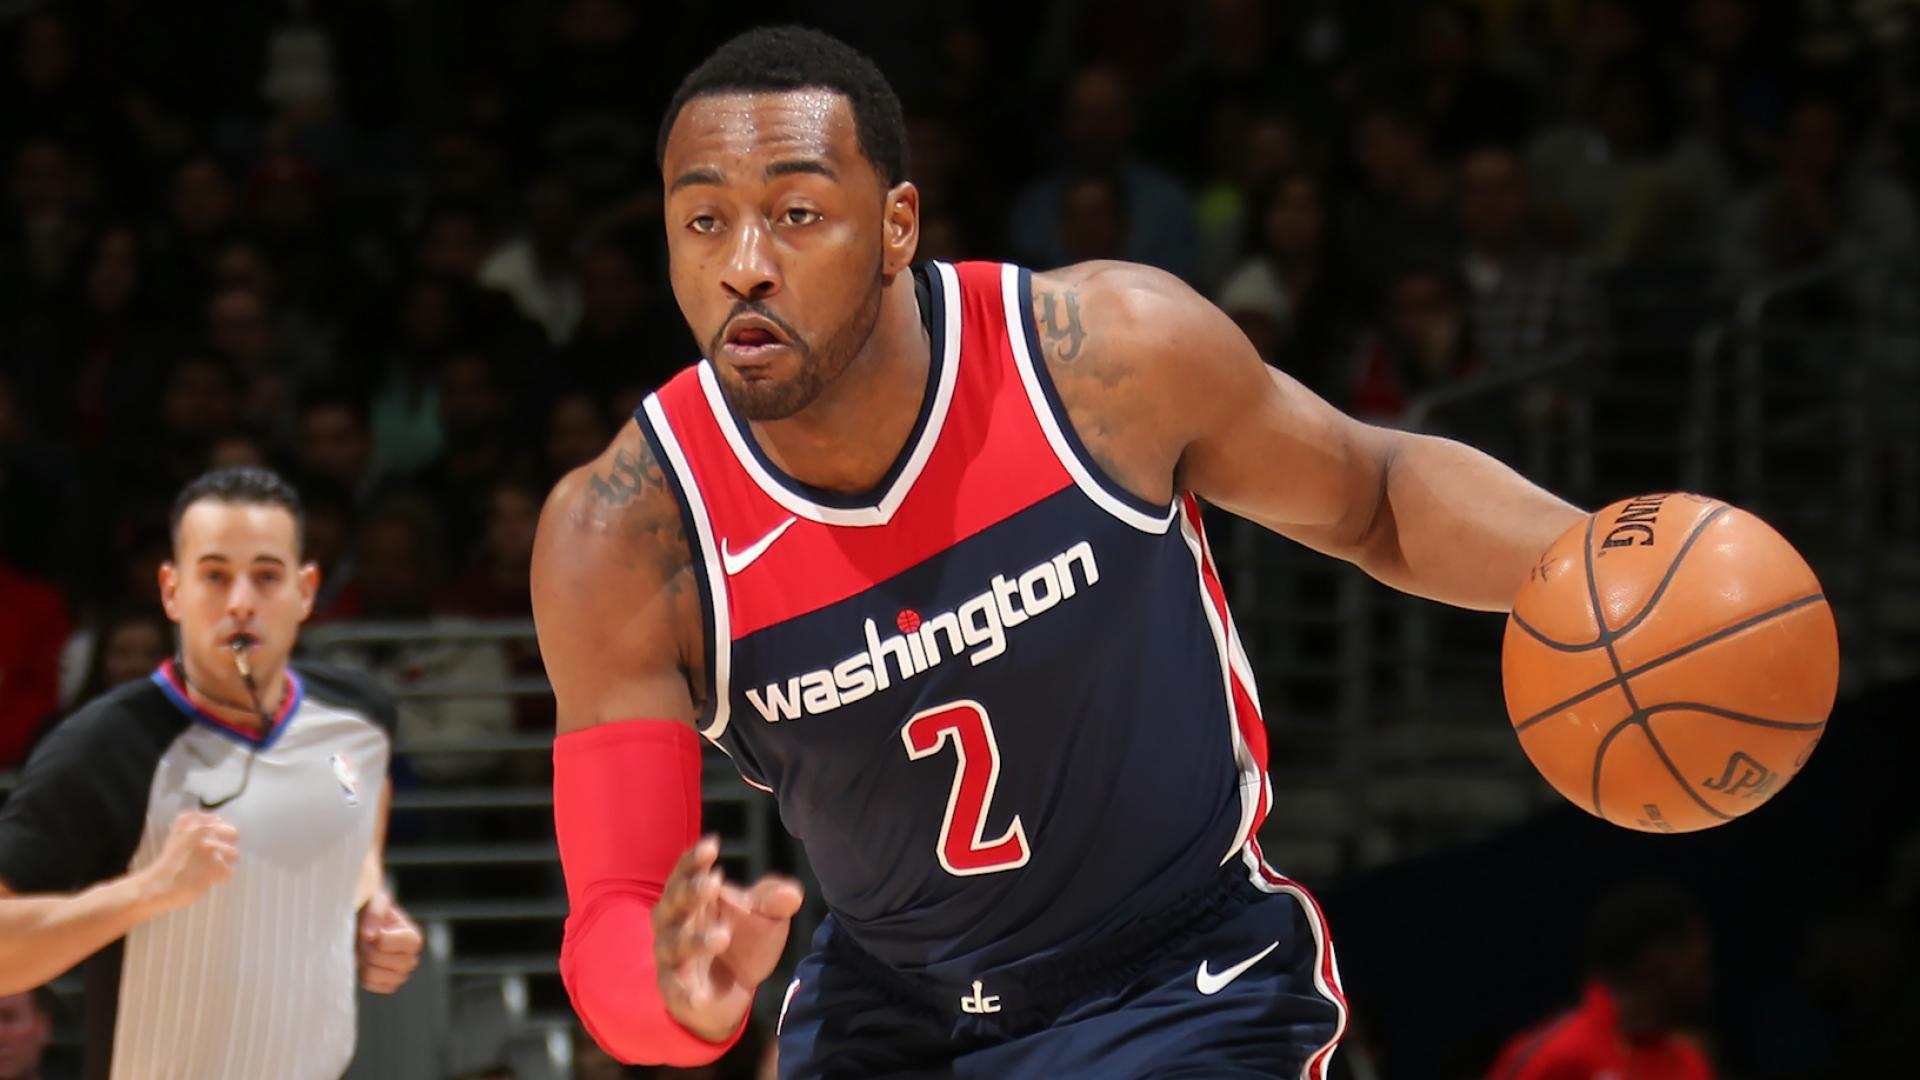 John Wall to reportedly have knee procedure, miss up to two months